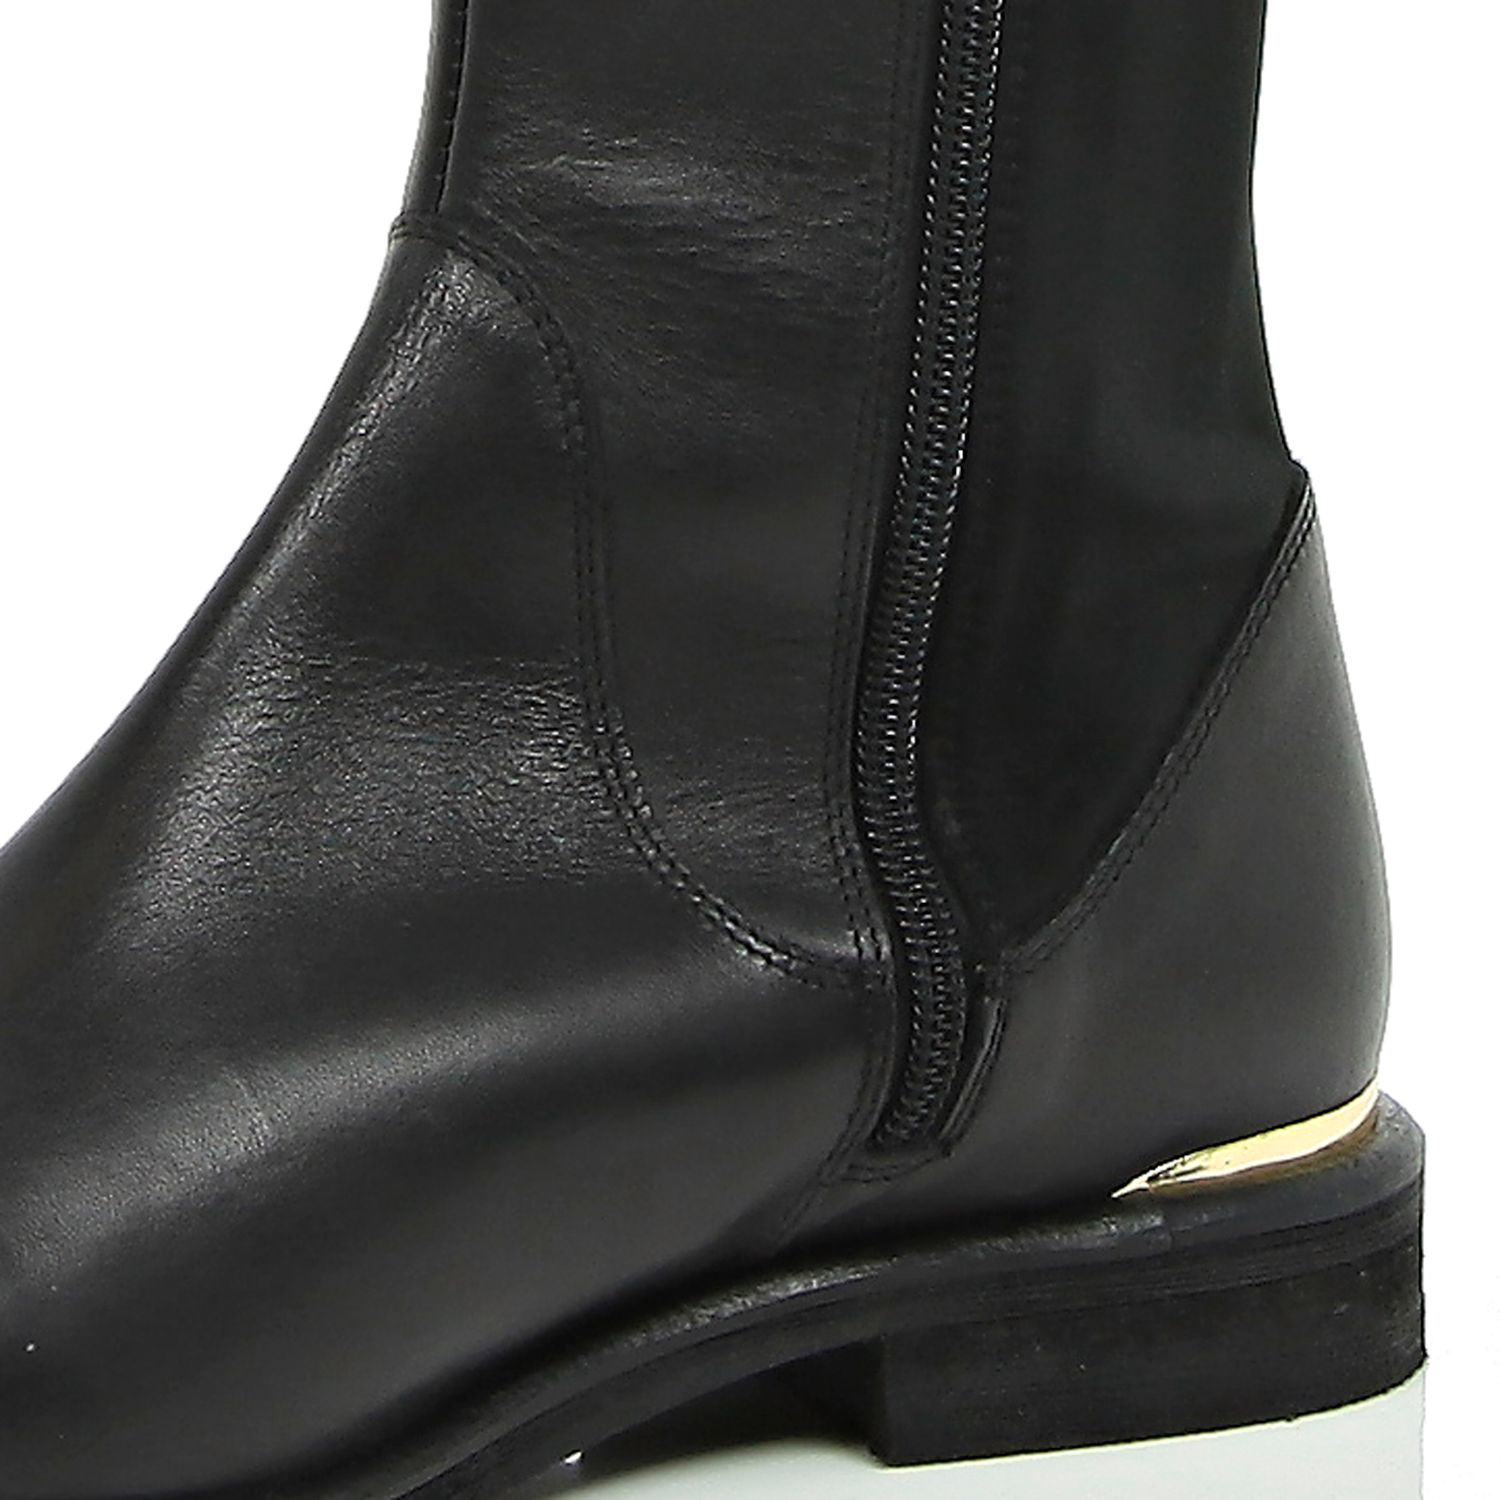 4465008d6f1 River Island Black Leather Over The Knee Boots in Black - Lyst